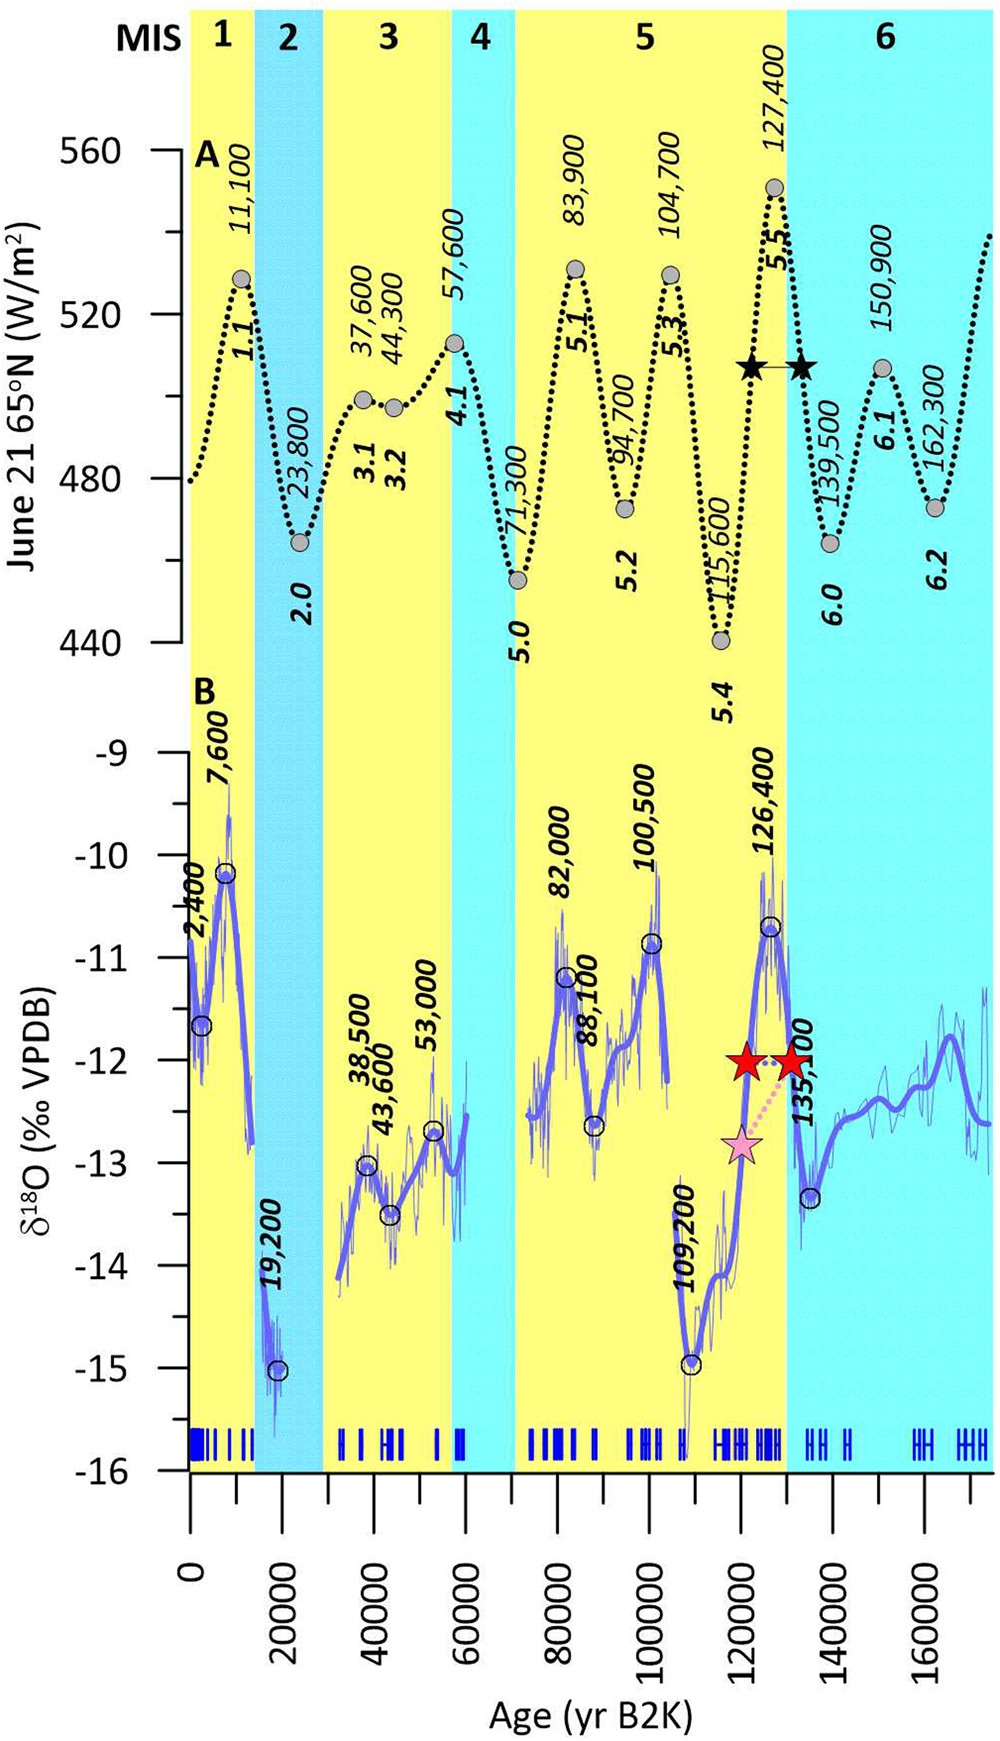 Arctic cryosphere and Milankovitch forcing of Great Basin